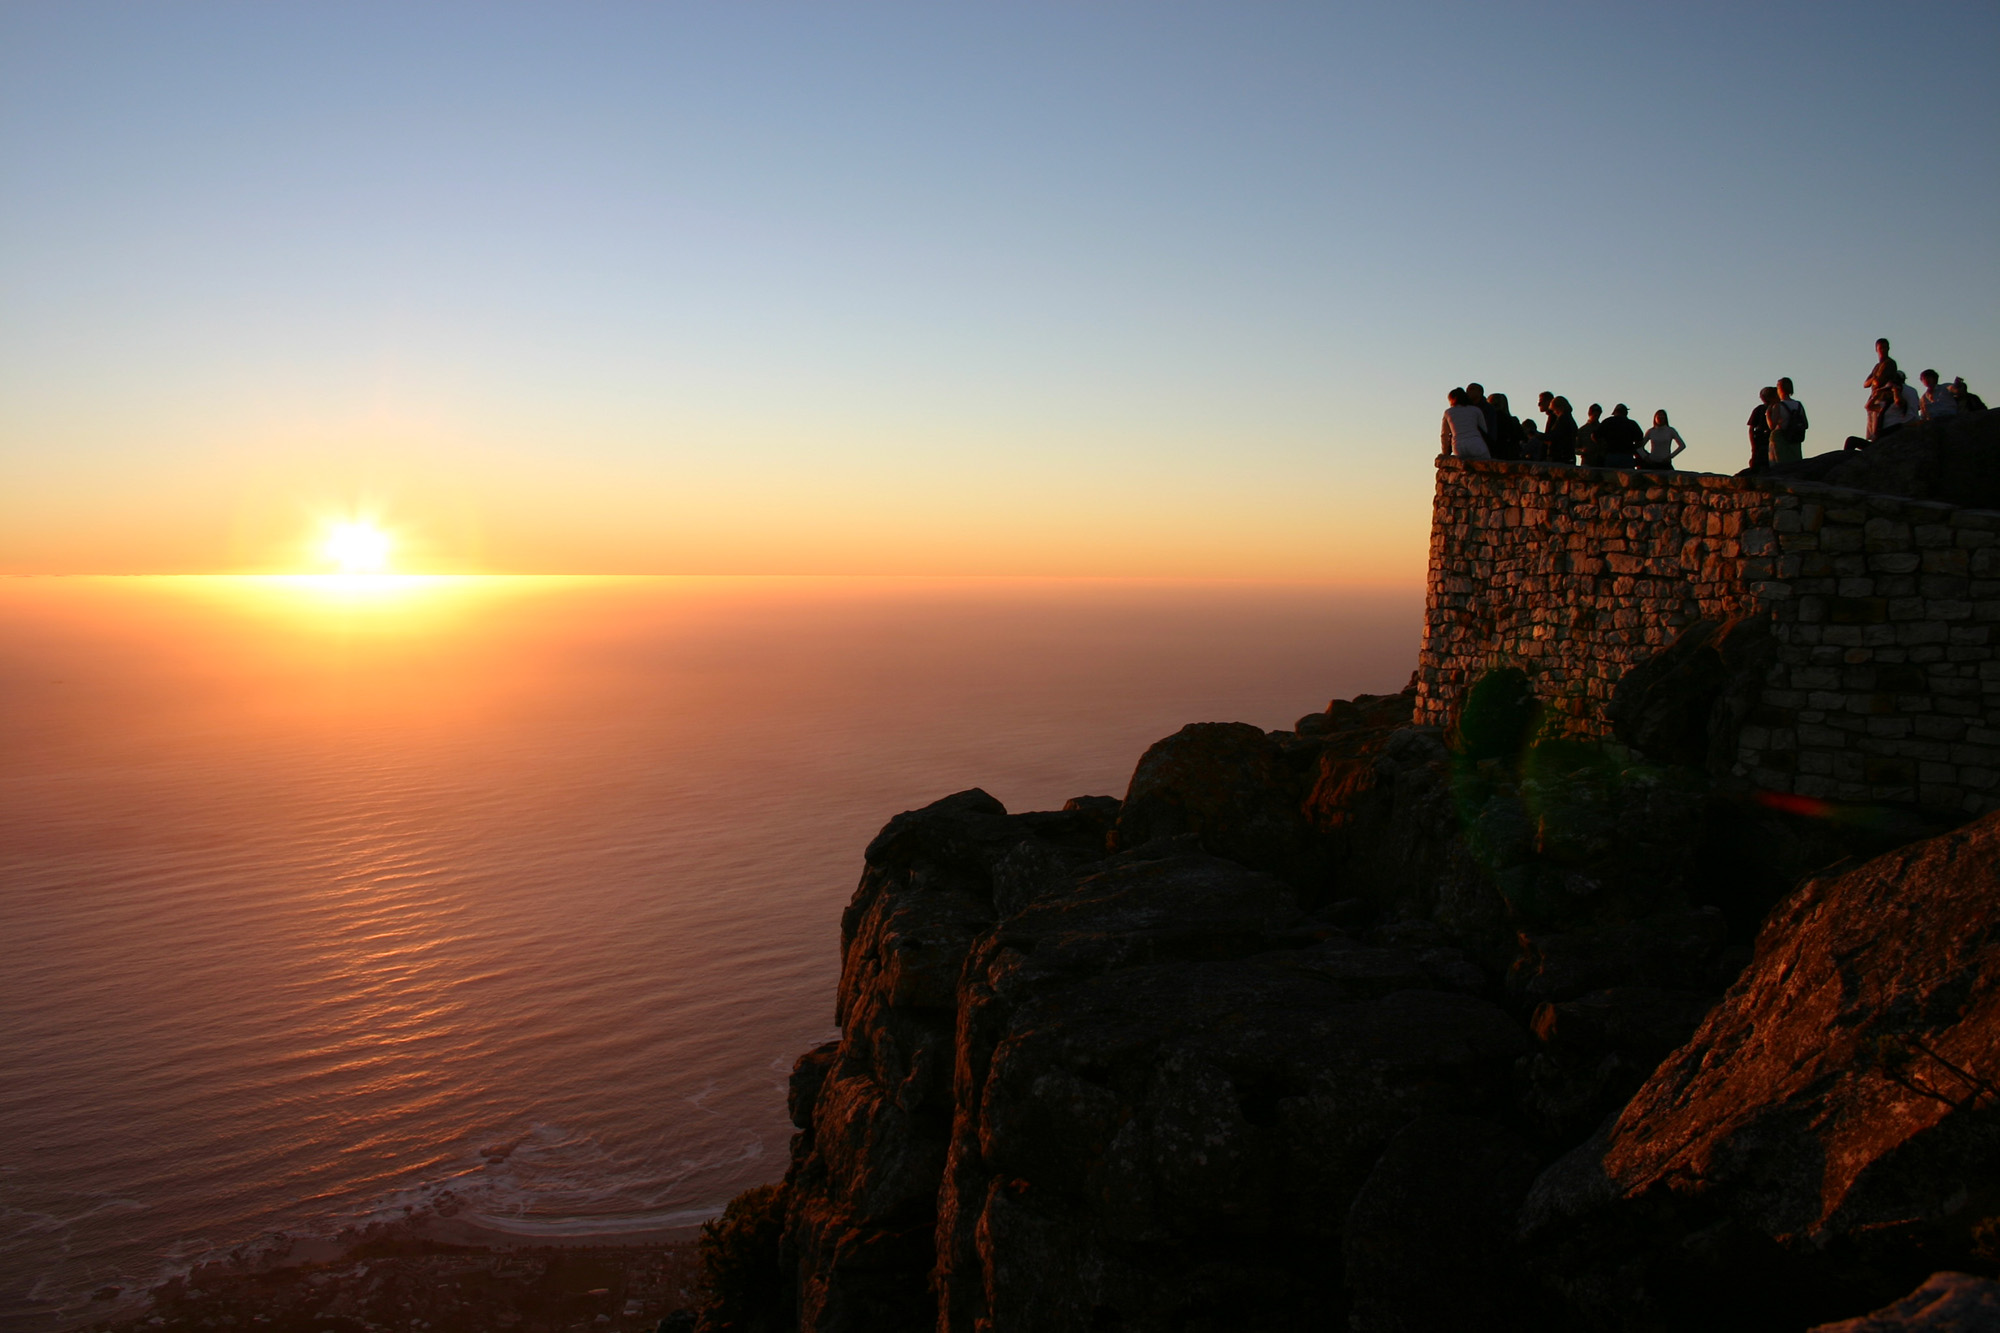 http://upload.wikimedia.org/wikipedia/commons/f/fc/Waiting_Sunset_Table_Mountain_Cape_Town_South_Africa_Luca_Galuzzi_2004.JPG